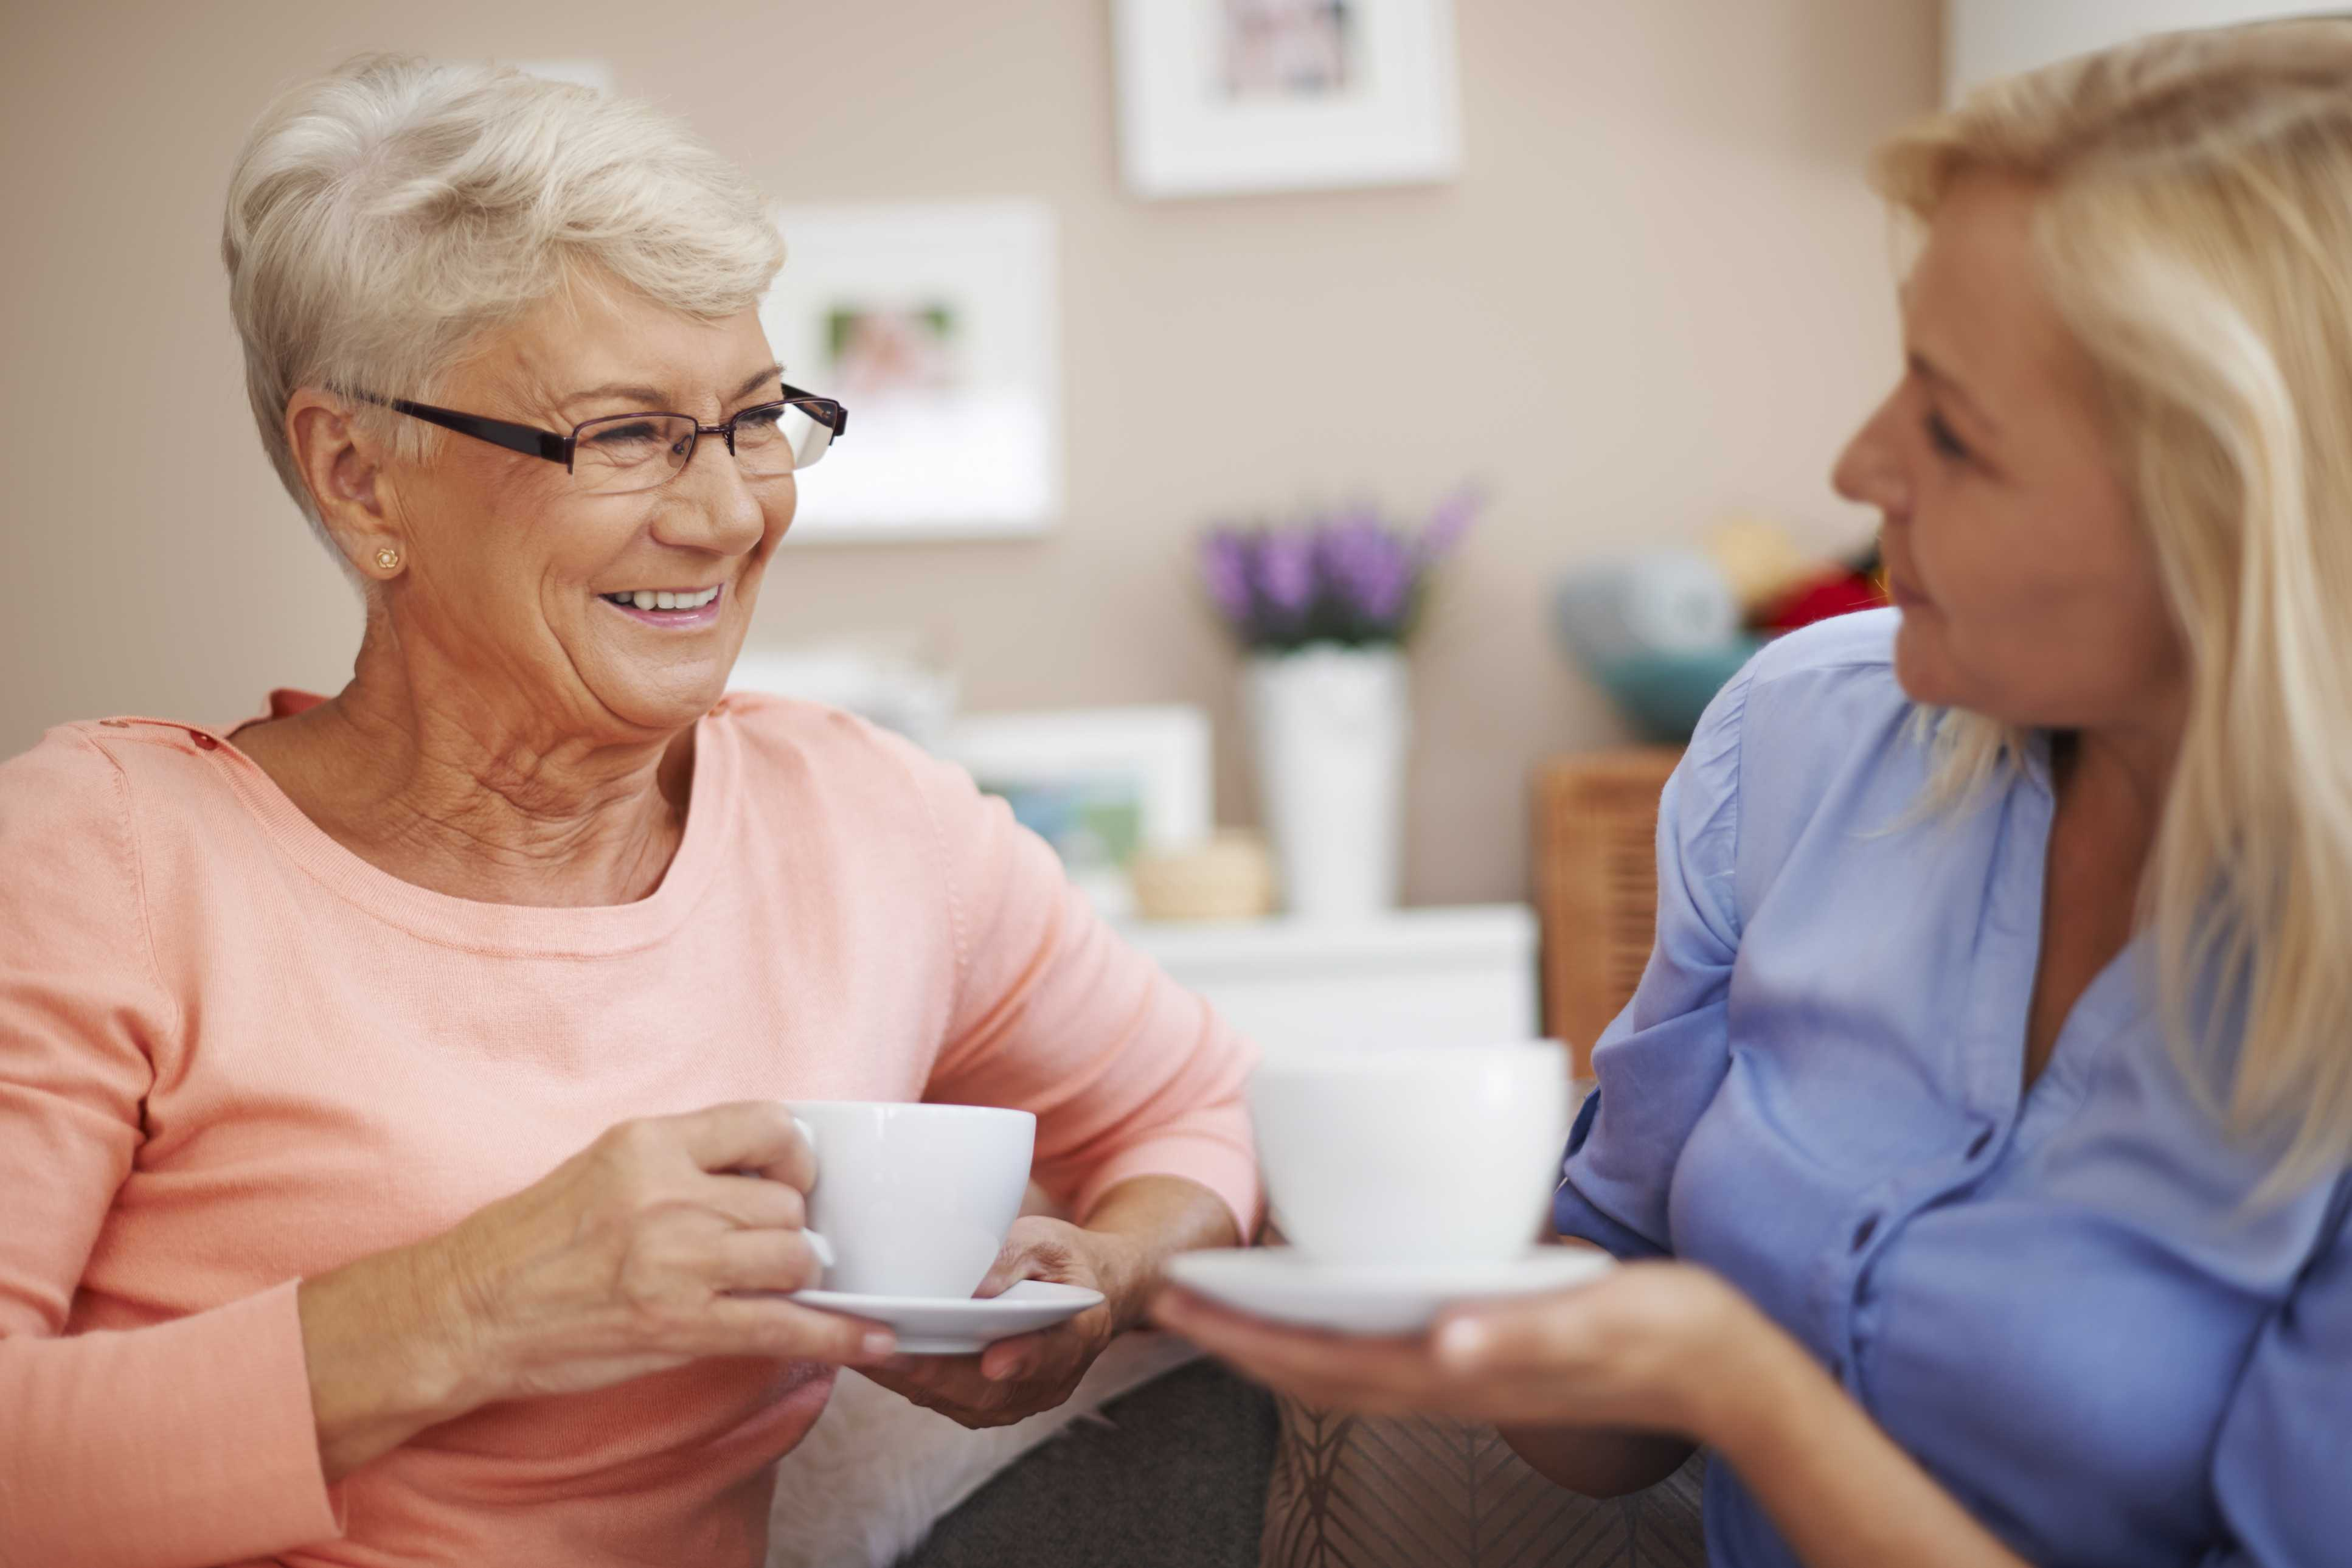 5 Things to Discuss with Your Aging Parents Today